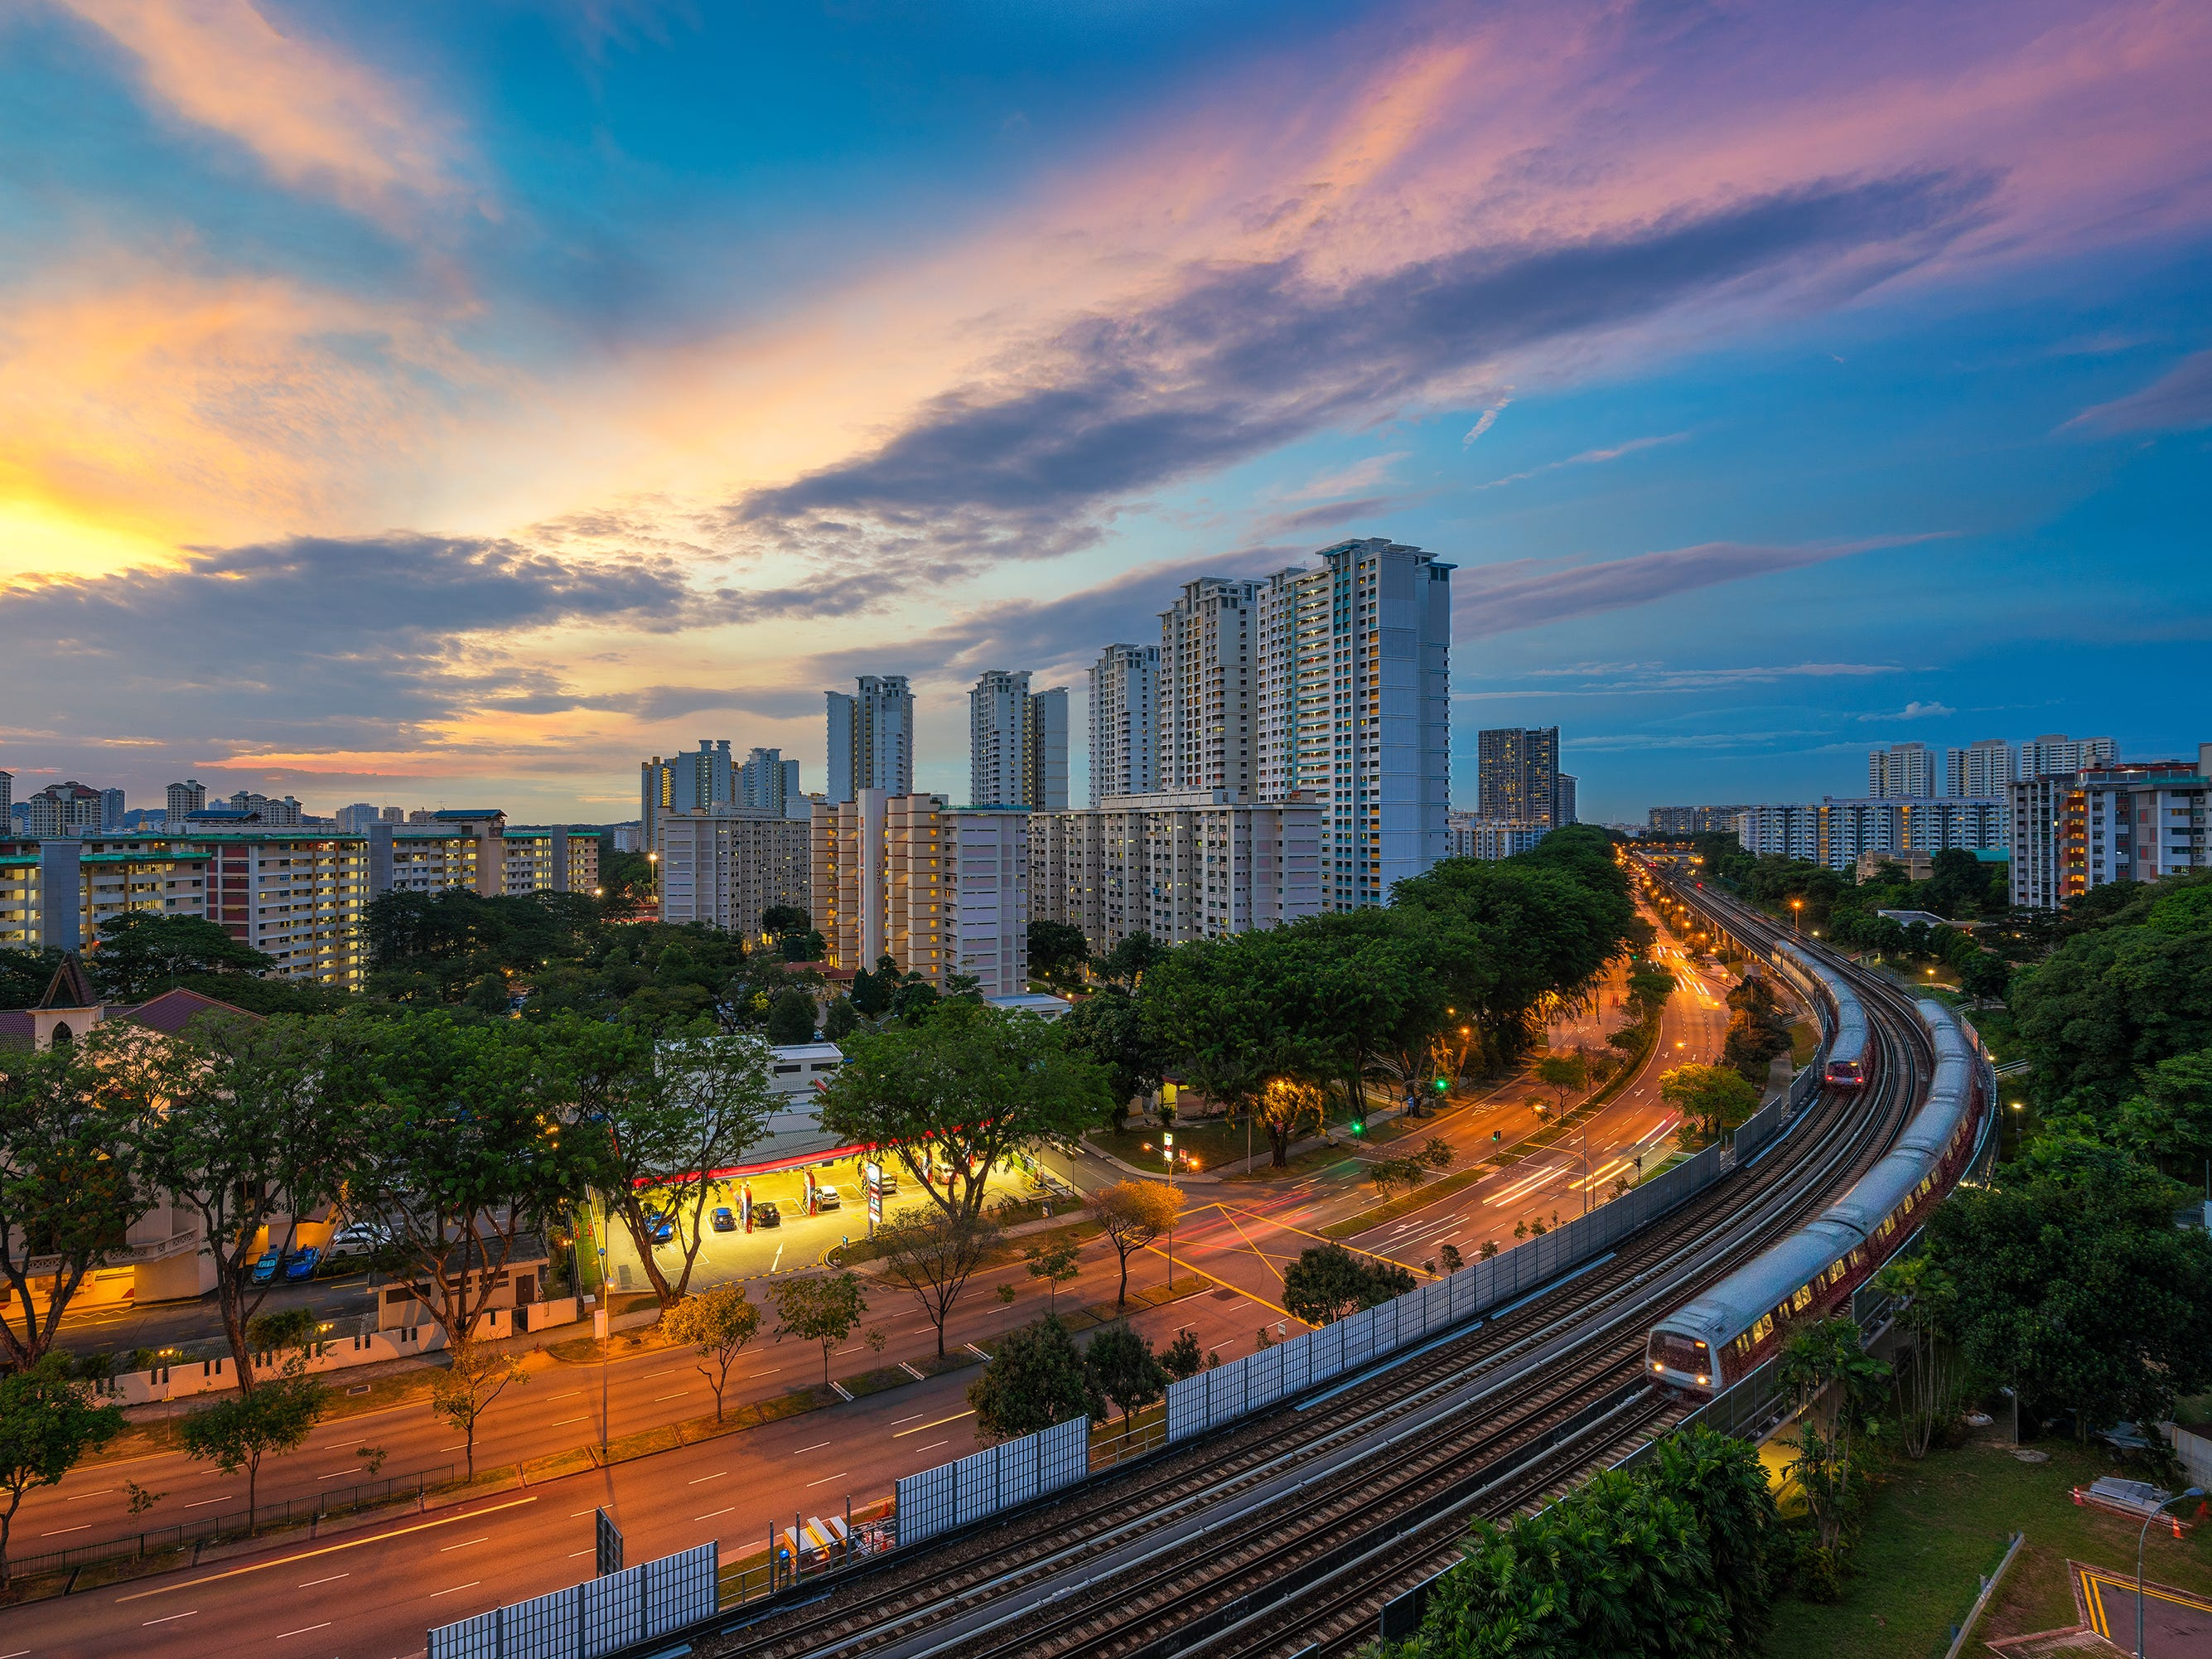 Singapore: Cheap, clean trains whisk travelers from one top attraction to another, including Chinatown, Gardens by the Bay and the upmarket shops of Orchard Road. Where Singapore's trains don't go, the buses do — and an EZ-Link card gets you access to both networks.